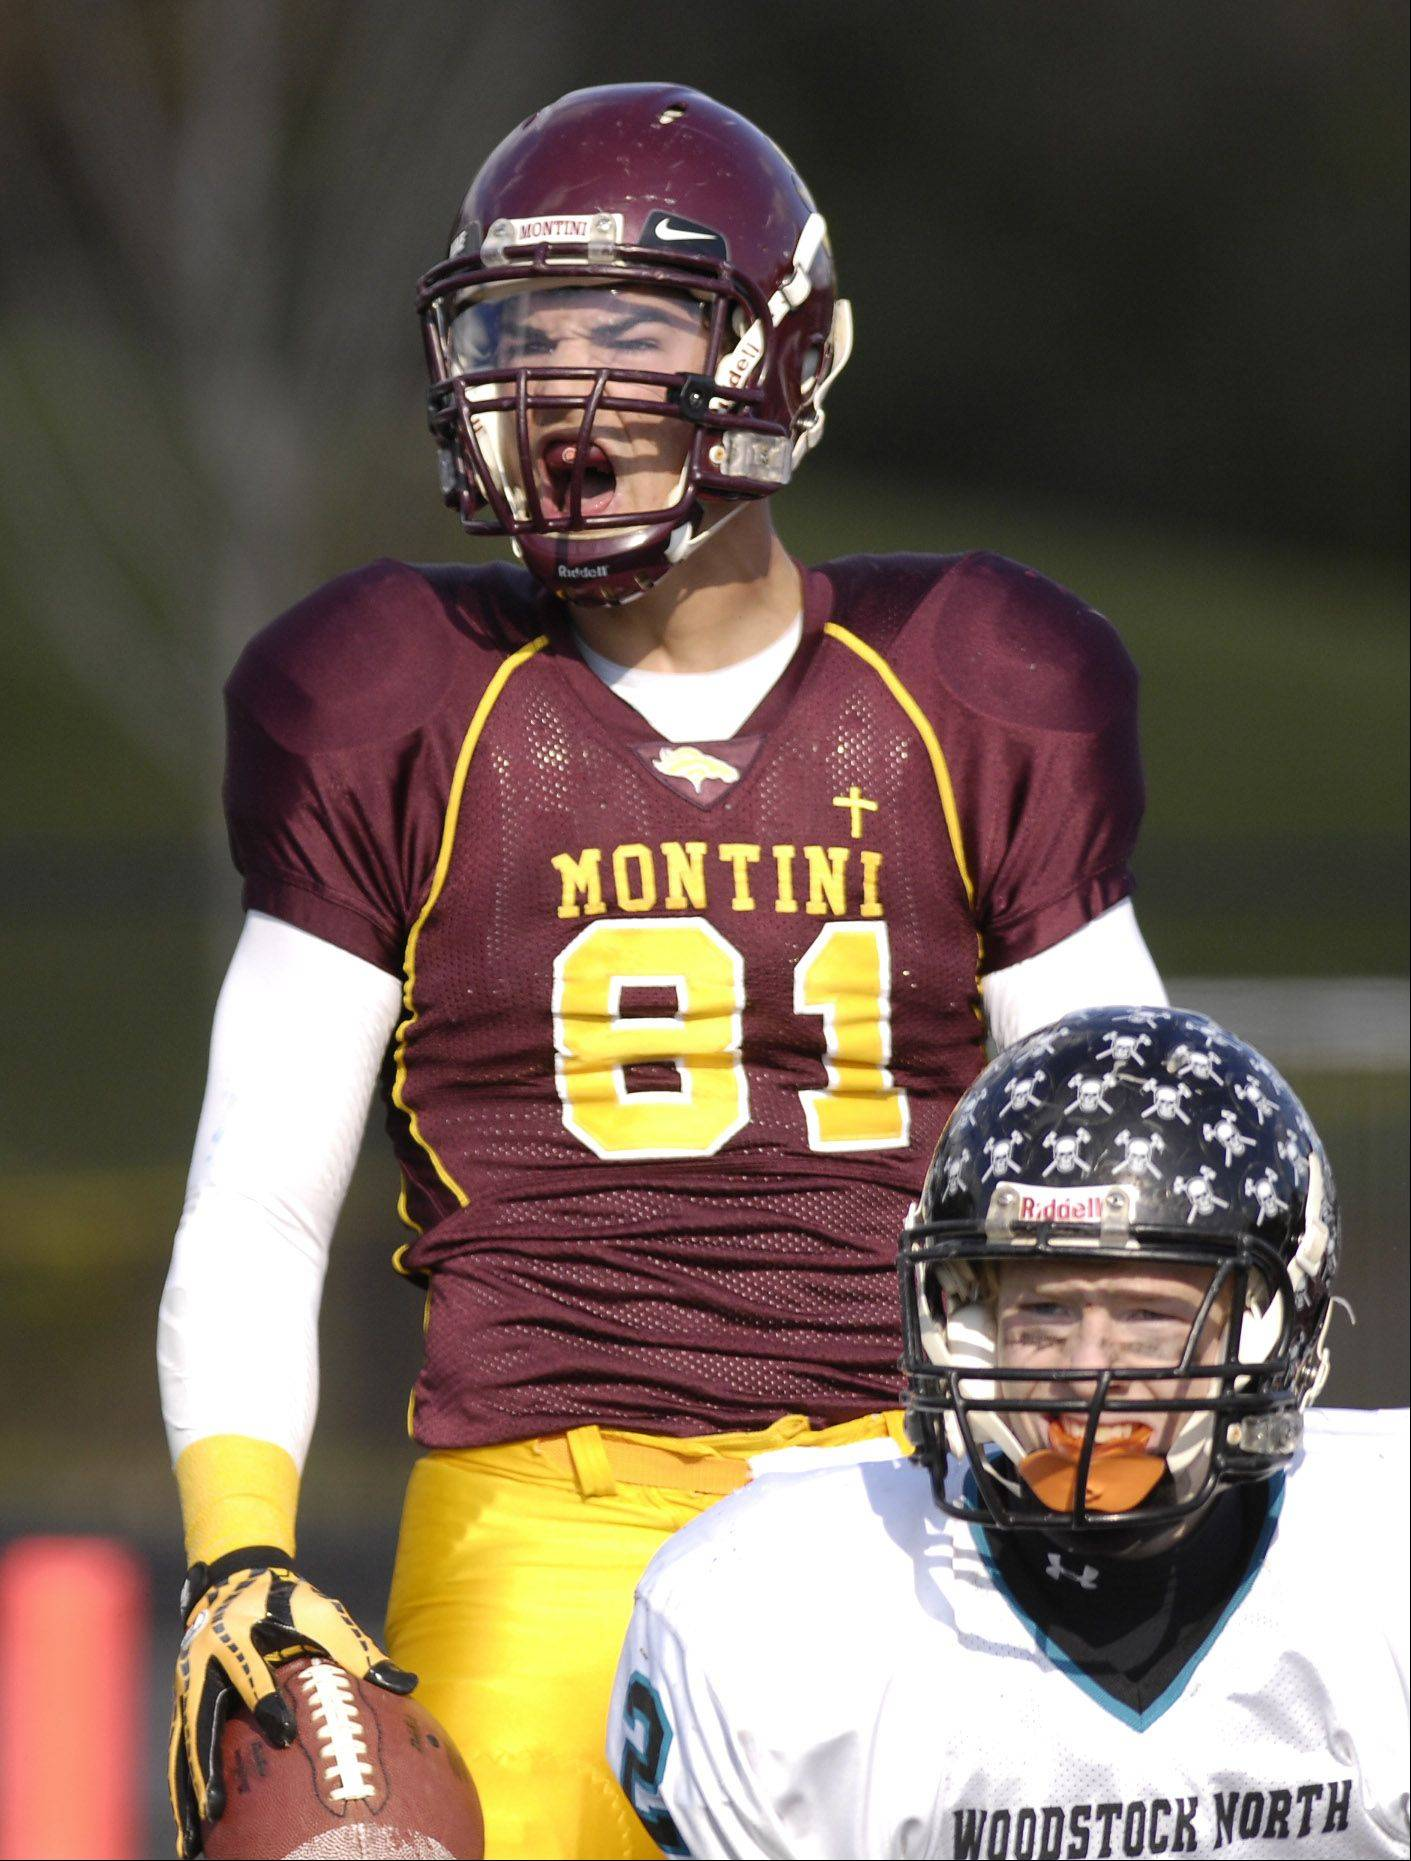 Jordan Westerkamp of Montini celebrates a long drive with in yard of the goal line, during IHSA 5A playoff game against Woodstock North High School at home in Lombard.